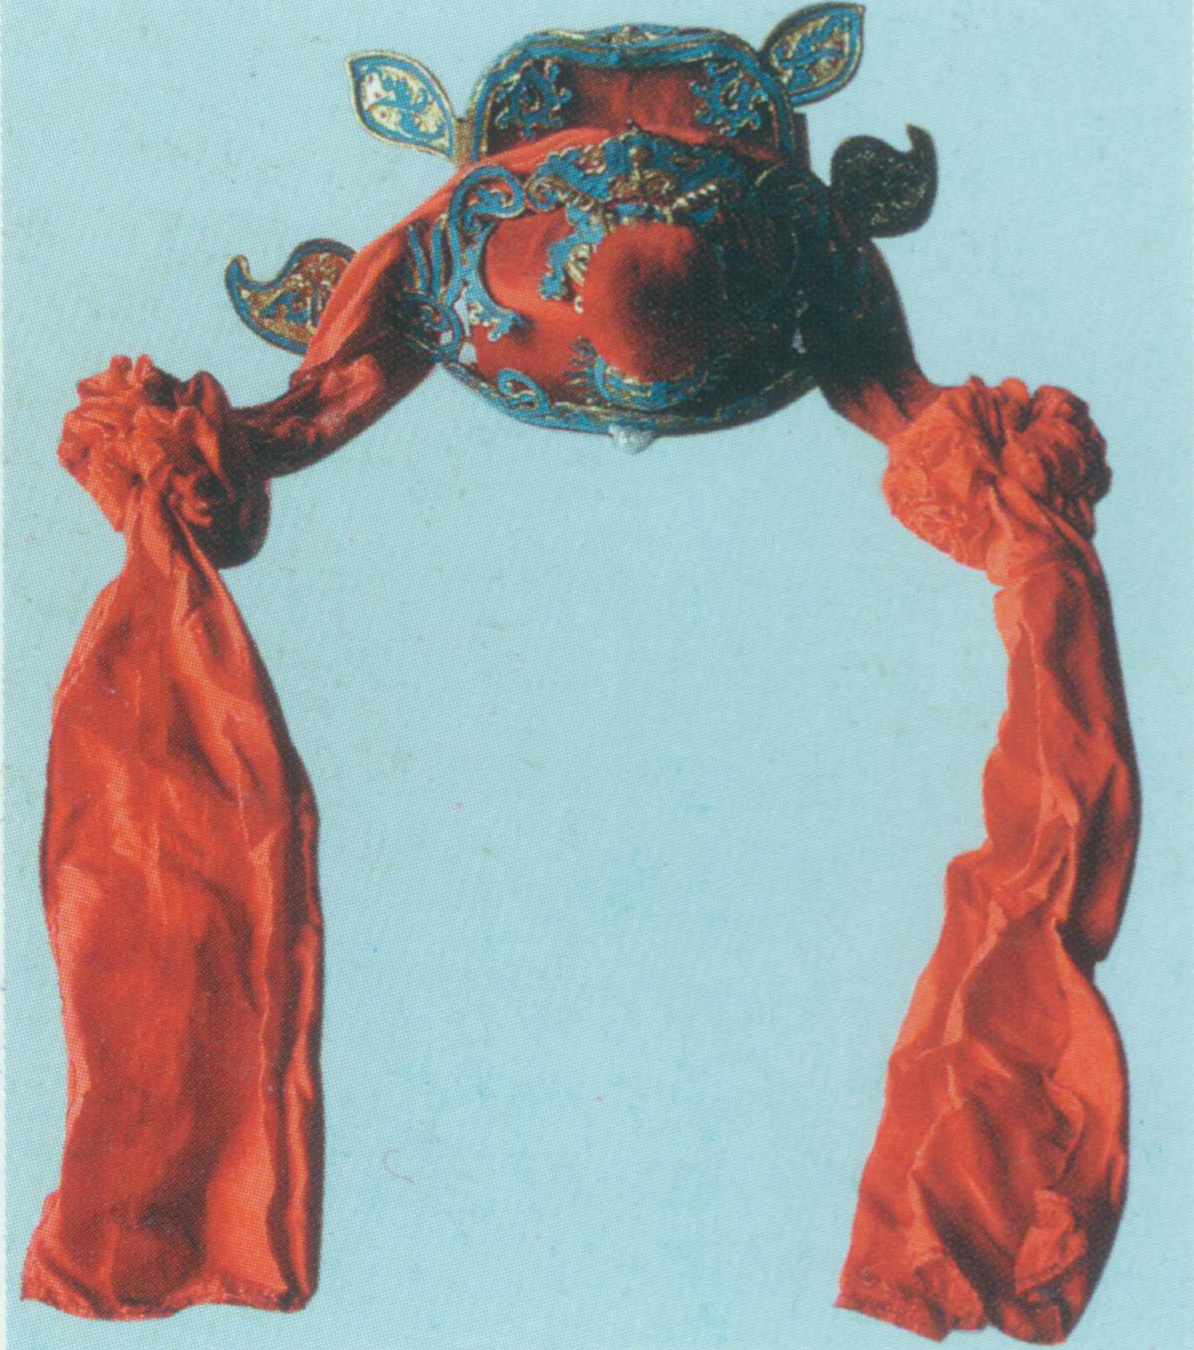 """Judge Hat    A rigid helmet. It resembles square gauze hat in looks. There is a round warped- shou  (a Chinese character meaning longevity) encircled flame at the frontal center and a big red velvet ball atop. It also has a pair of wings pointing upwards is in the behind, with other ornaments such as beads, bats and velvet balls. It is commonly seen in red or black. Only judges and the like in Chinese mythologies wear this hat. For example, Zhong Kui just wears a judge hat in the Act """"The marriage of Zhongkui's younger sister"""" of  Happy Endings for Everyone ."""